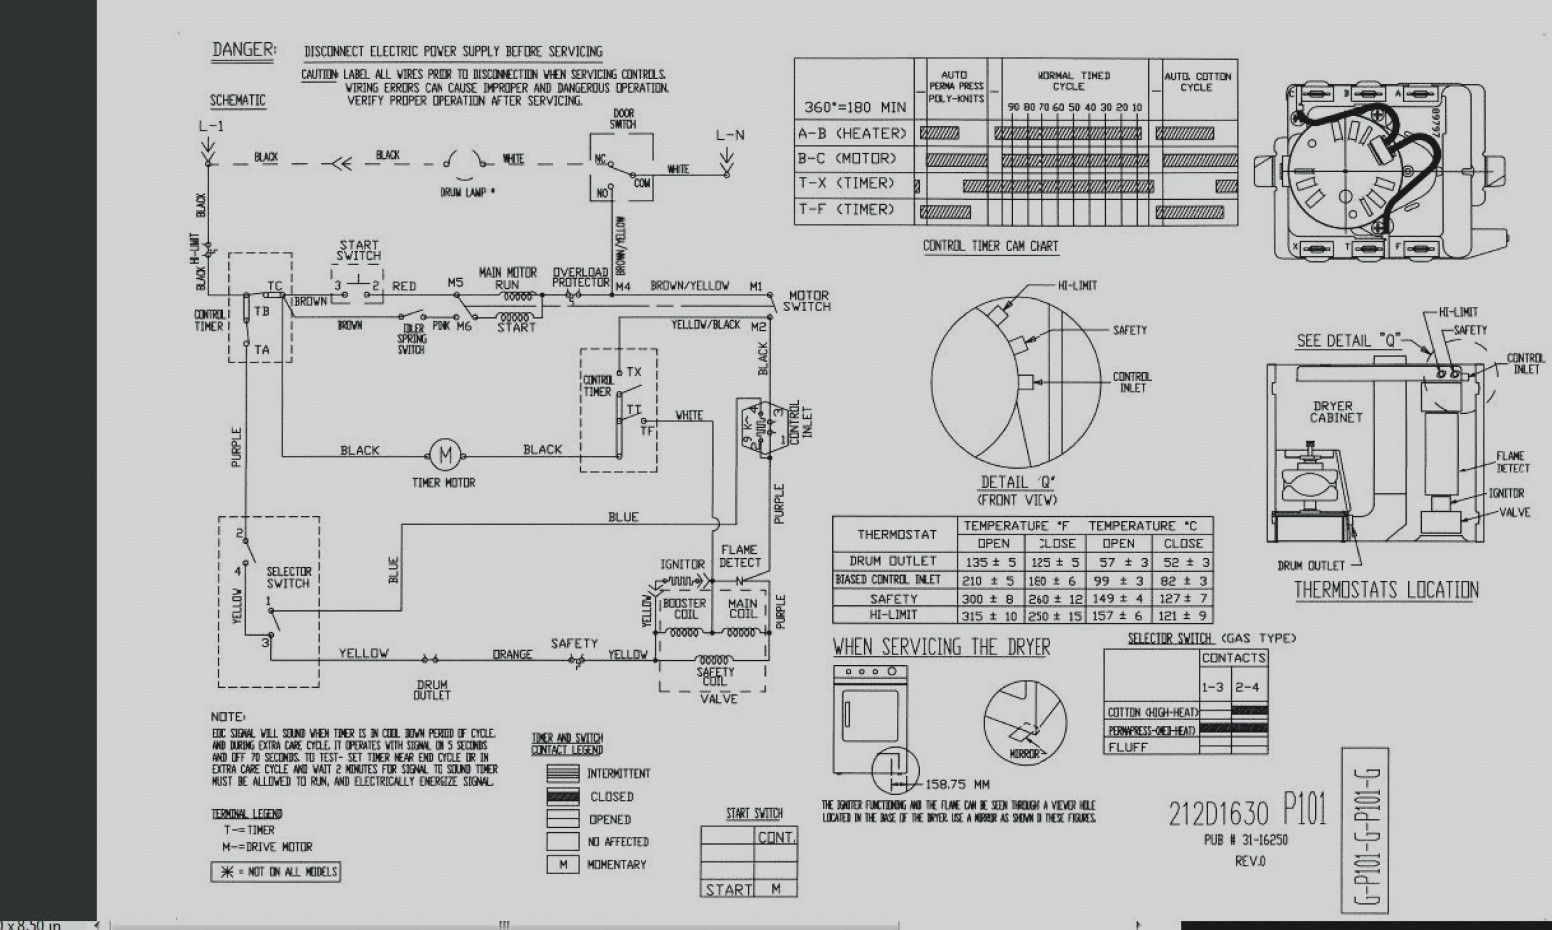 ge dryer timer wiring diagram sample. Black Bedroom Furniture Sets. Home Design Ideas